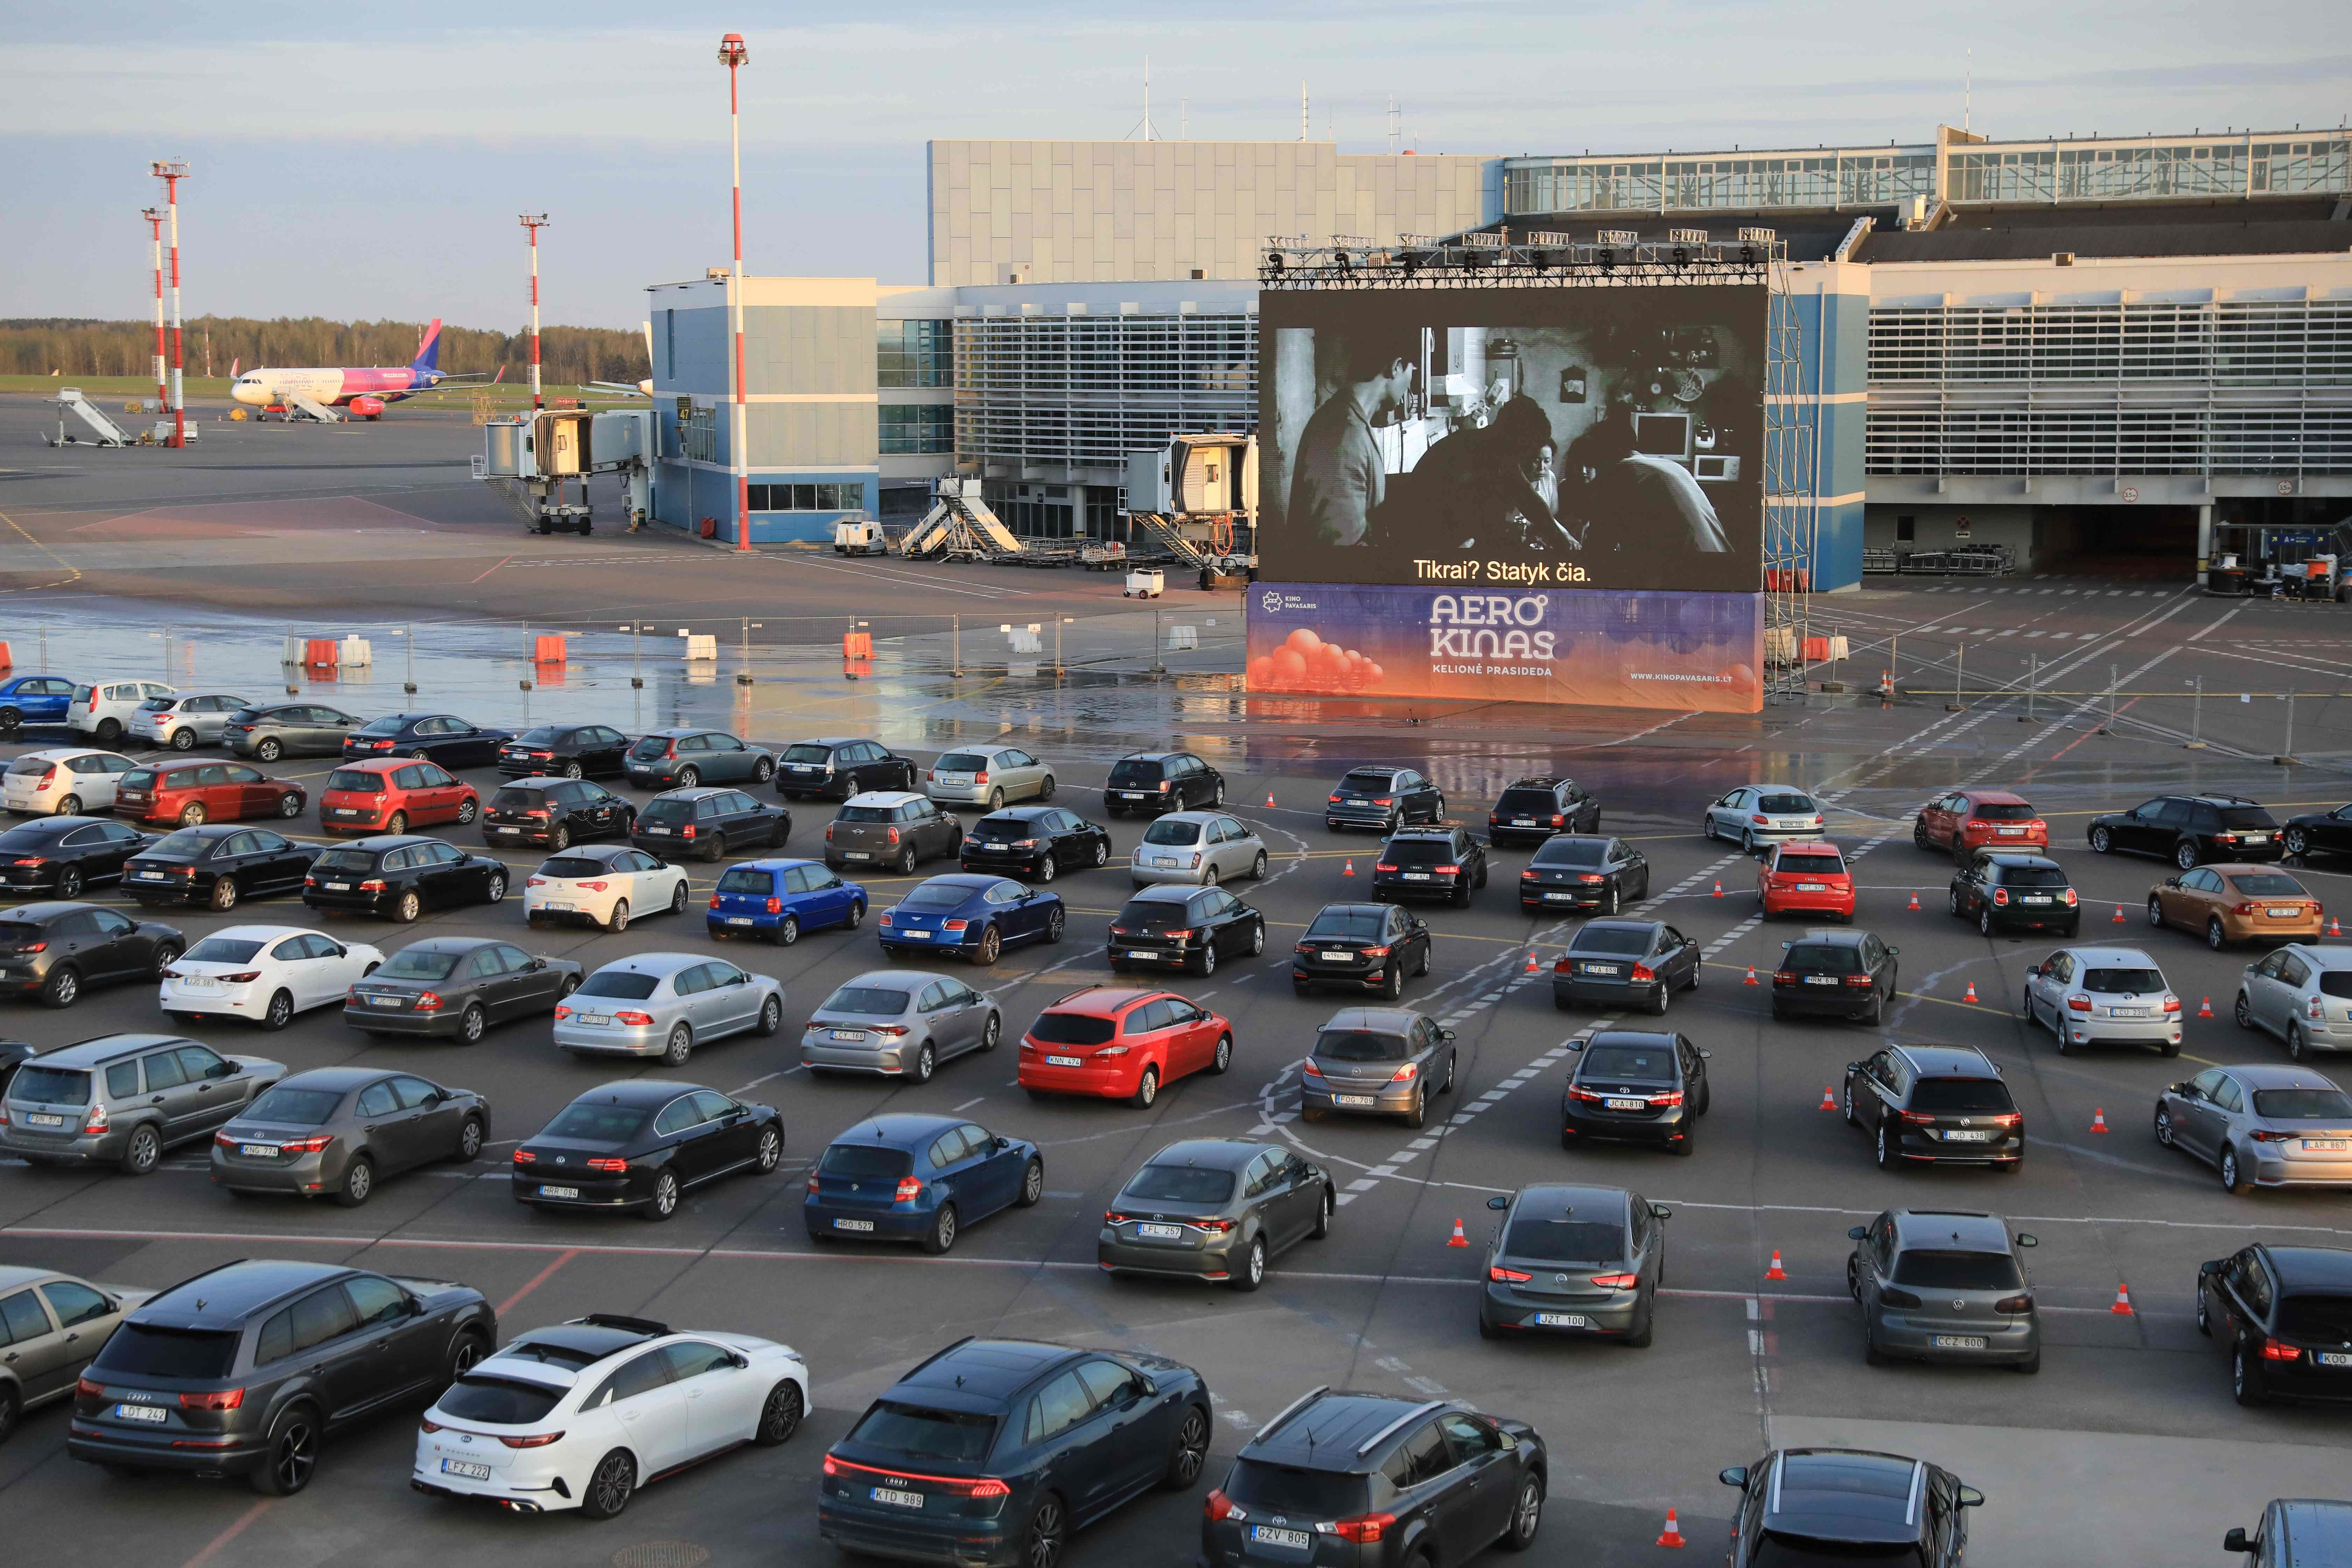 In this makeshift drive-in cinema at the airport in Vilnius, Lithuania, people sit in their cars watching Oscar-winning South Korean film Parasite. While movie theatres and airport operations remain shut due to coronavirus, this is the best arrangement to beat the blues.